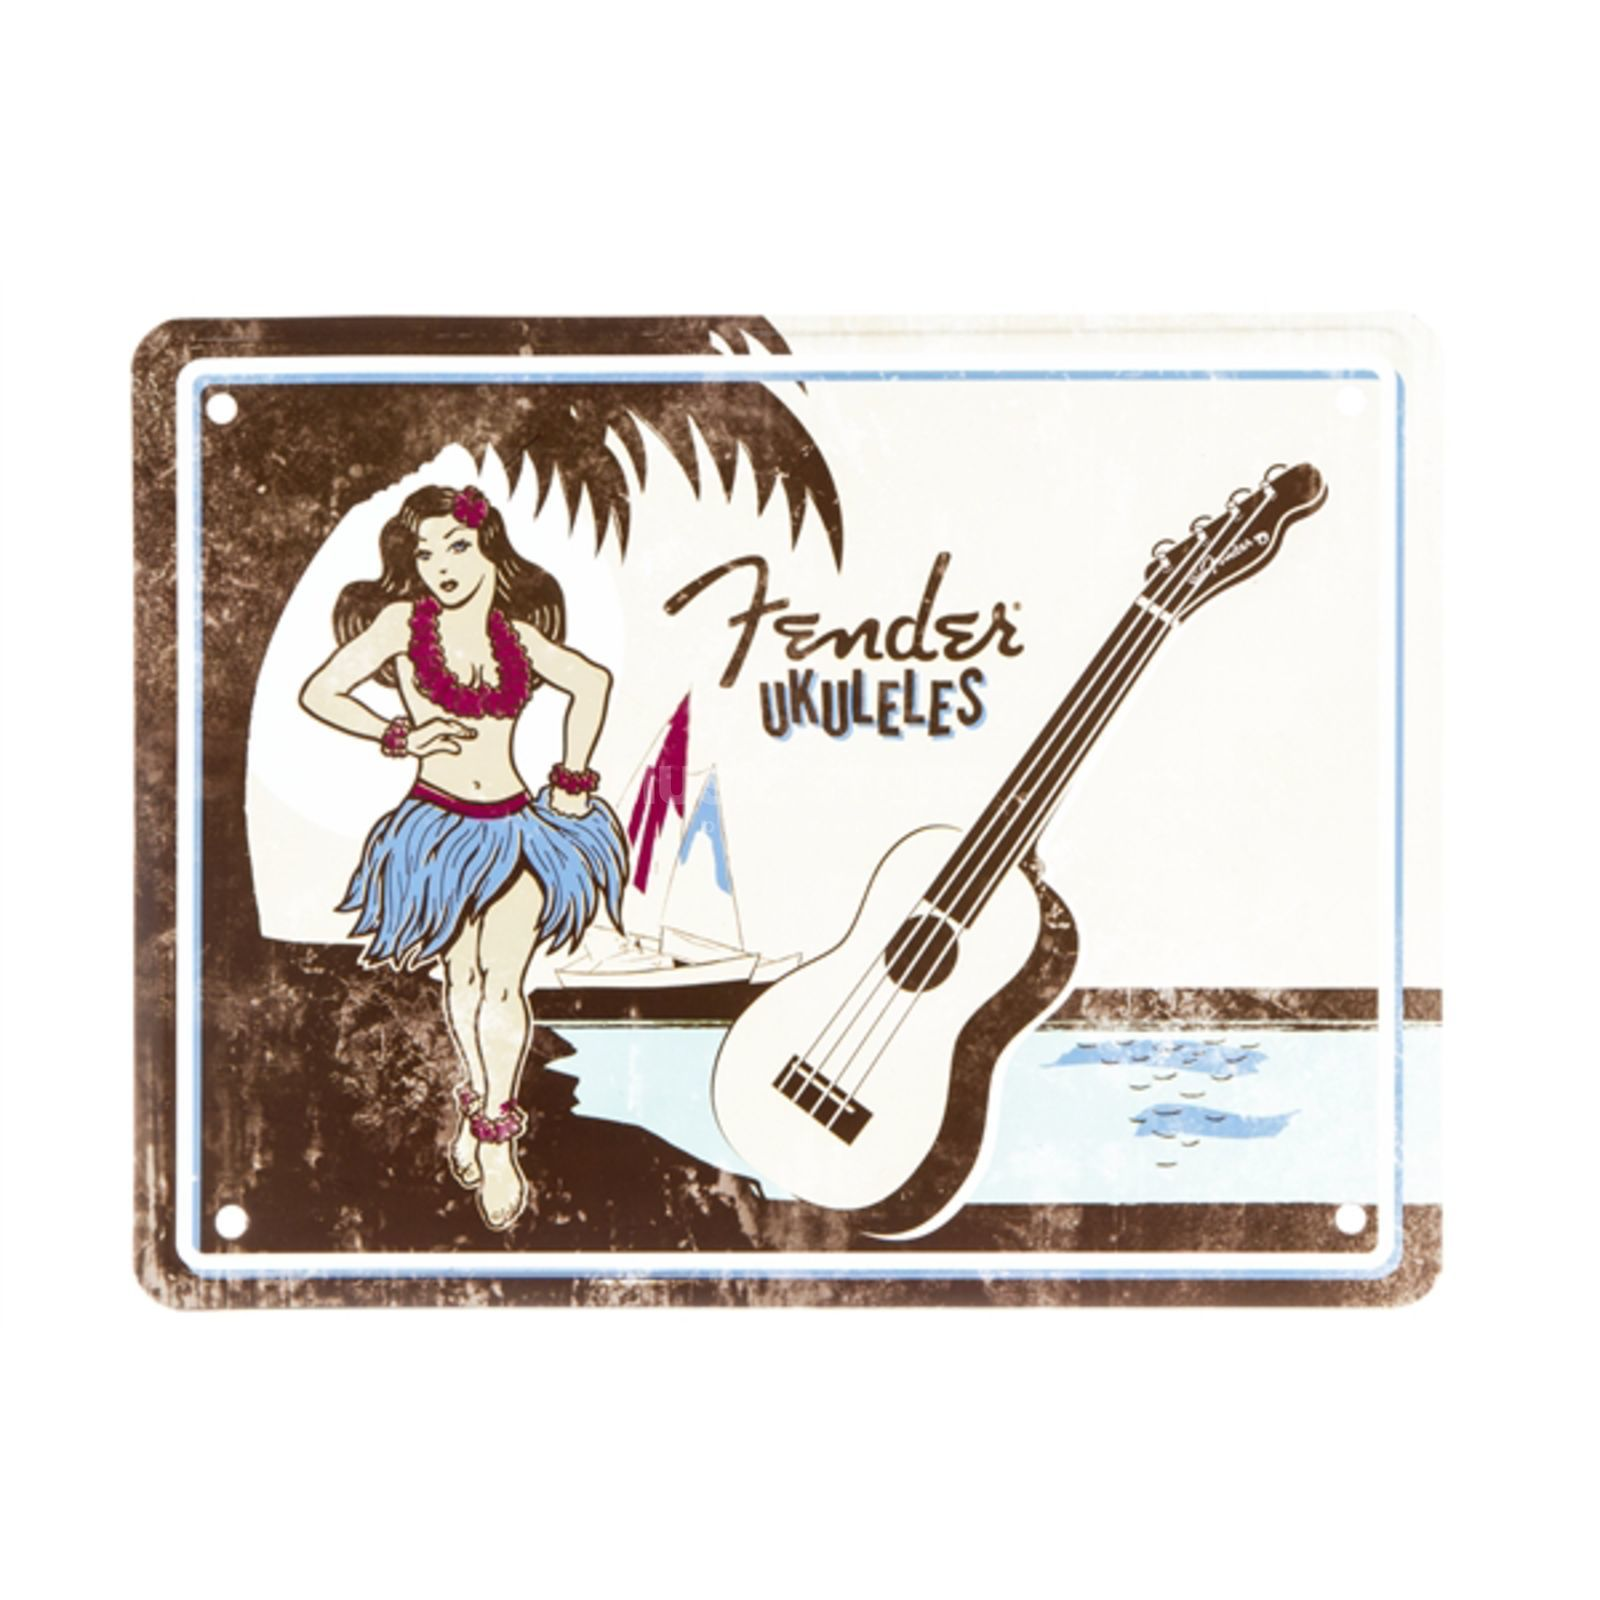 Fender Hula Girl Tin Sign Blechschild Produktbild